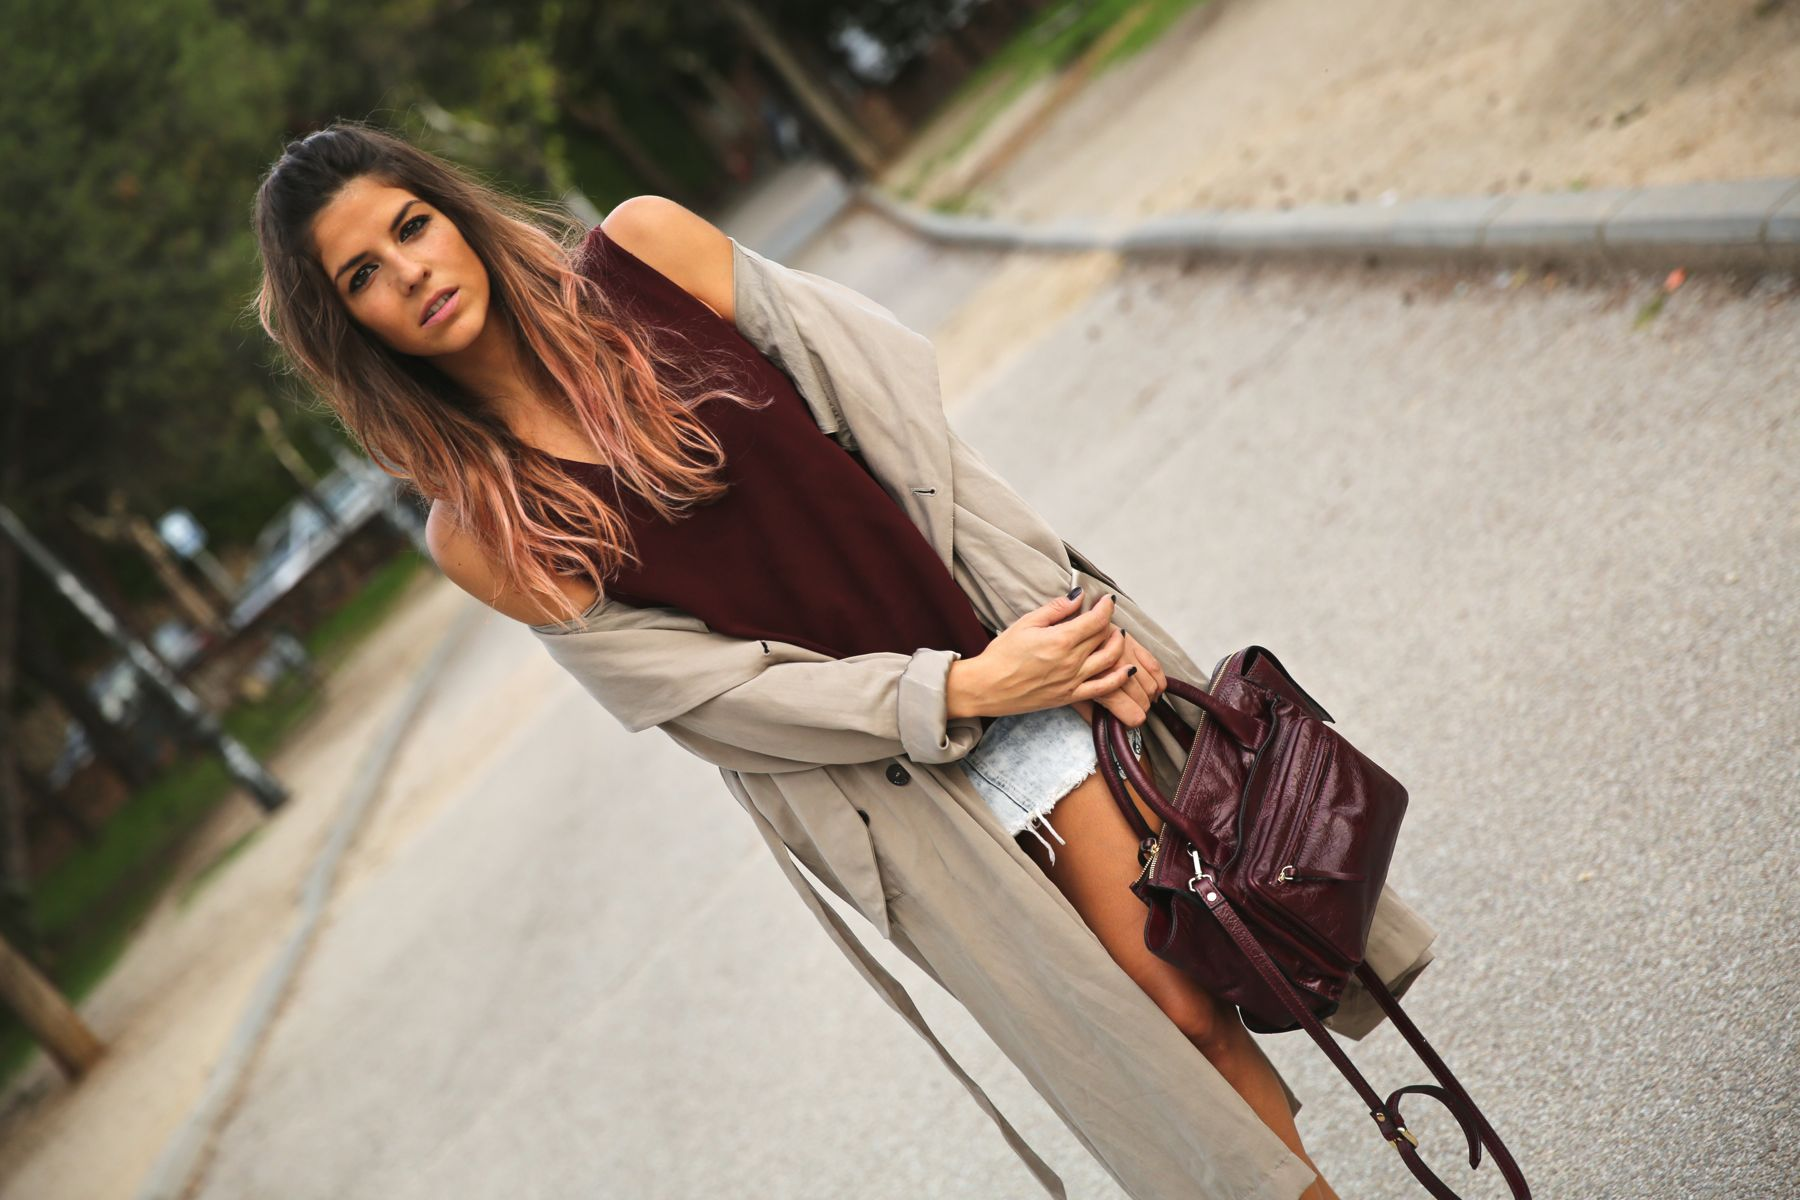 trendy_taste-look-outfit-street_style-ootd-blog-blogger-fashion_spain-moda_españa-boho-hippie-gabardina-botines_camperos-booties-gabardina-raincoat-burgundy_bag-zara-6